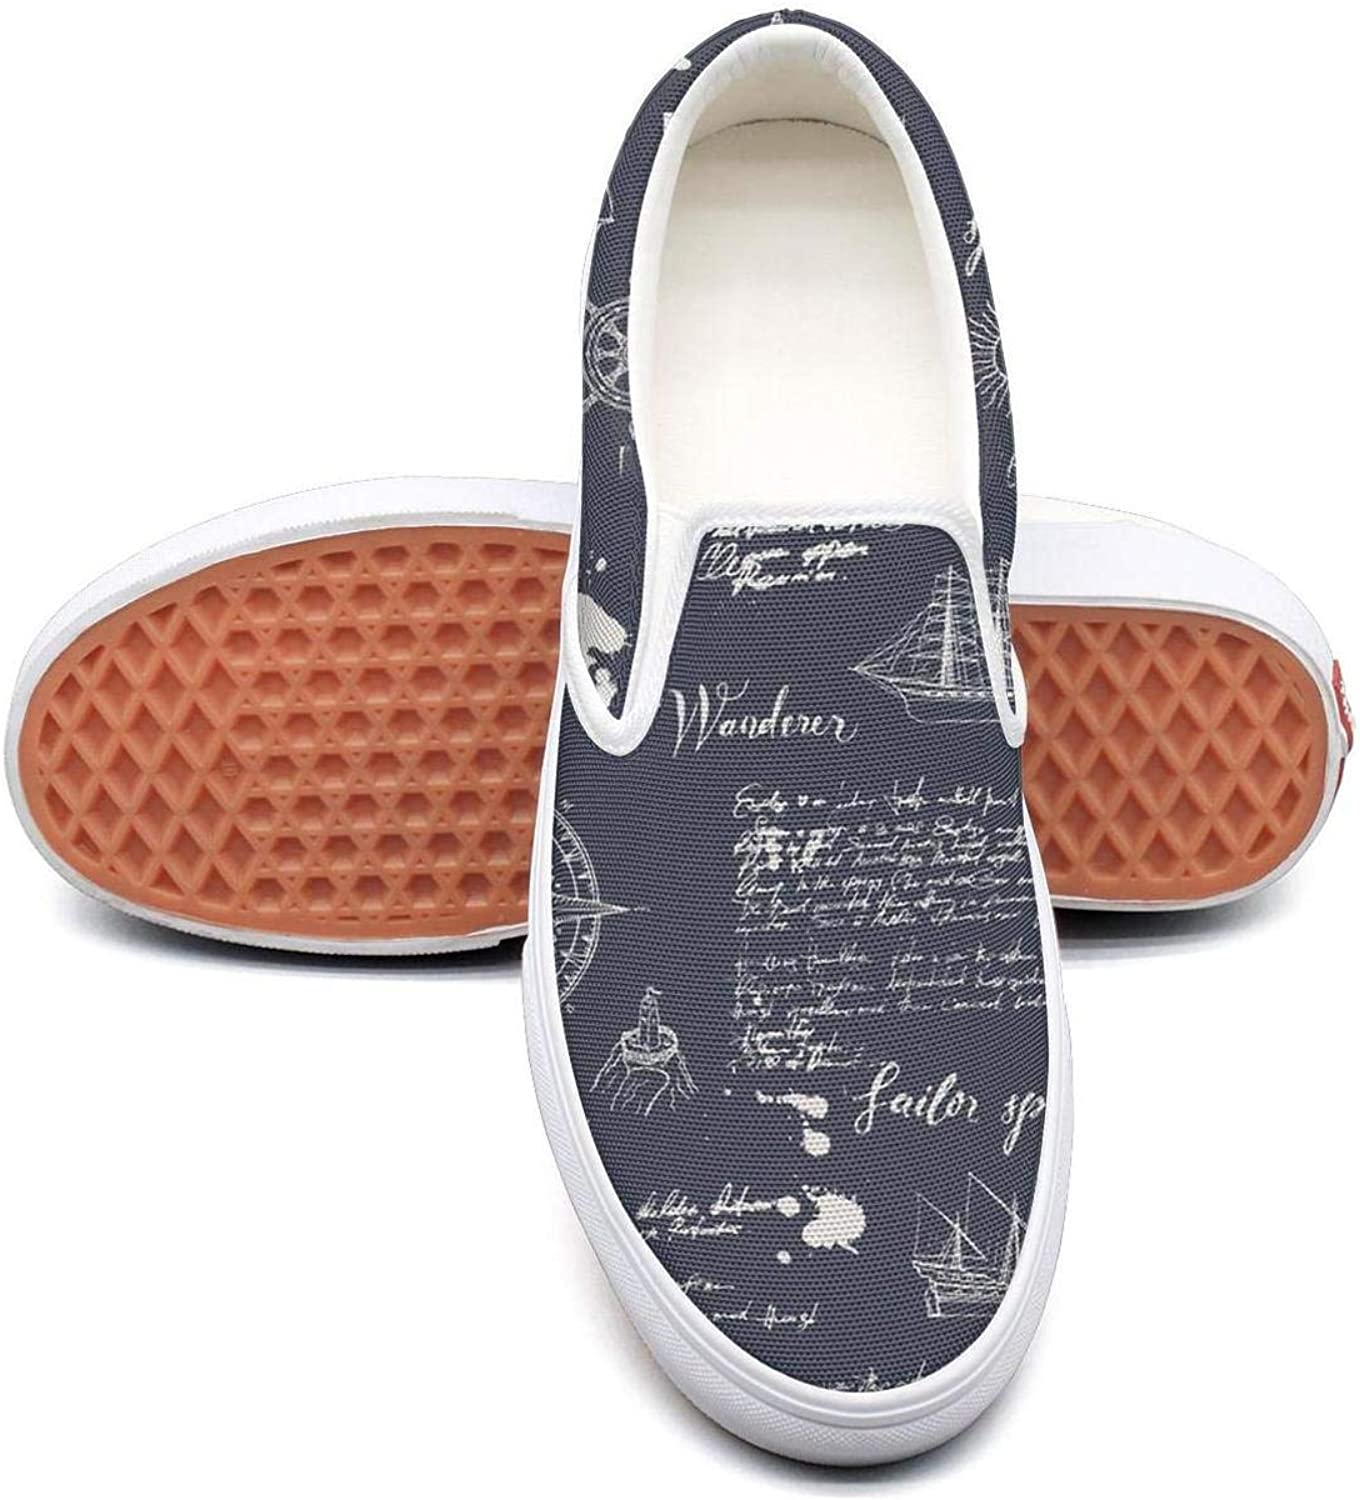 Vintage Moon Trave Womens Flat Slip on Low Top Canvas Deck shoes